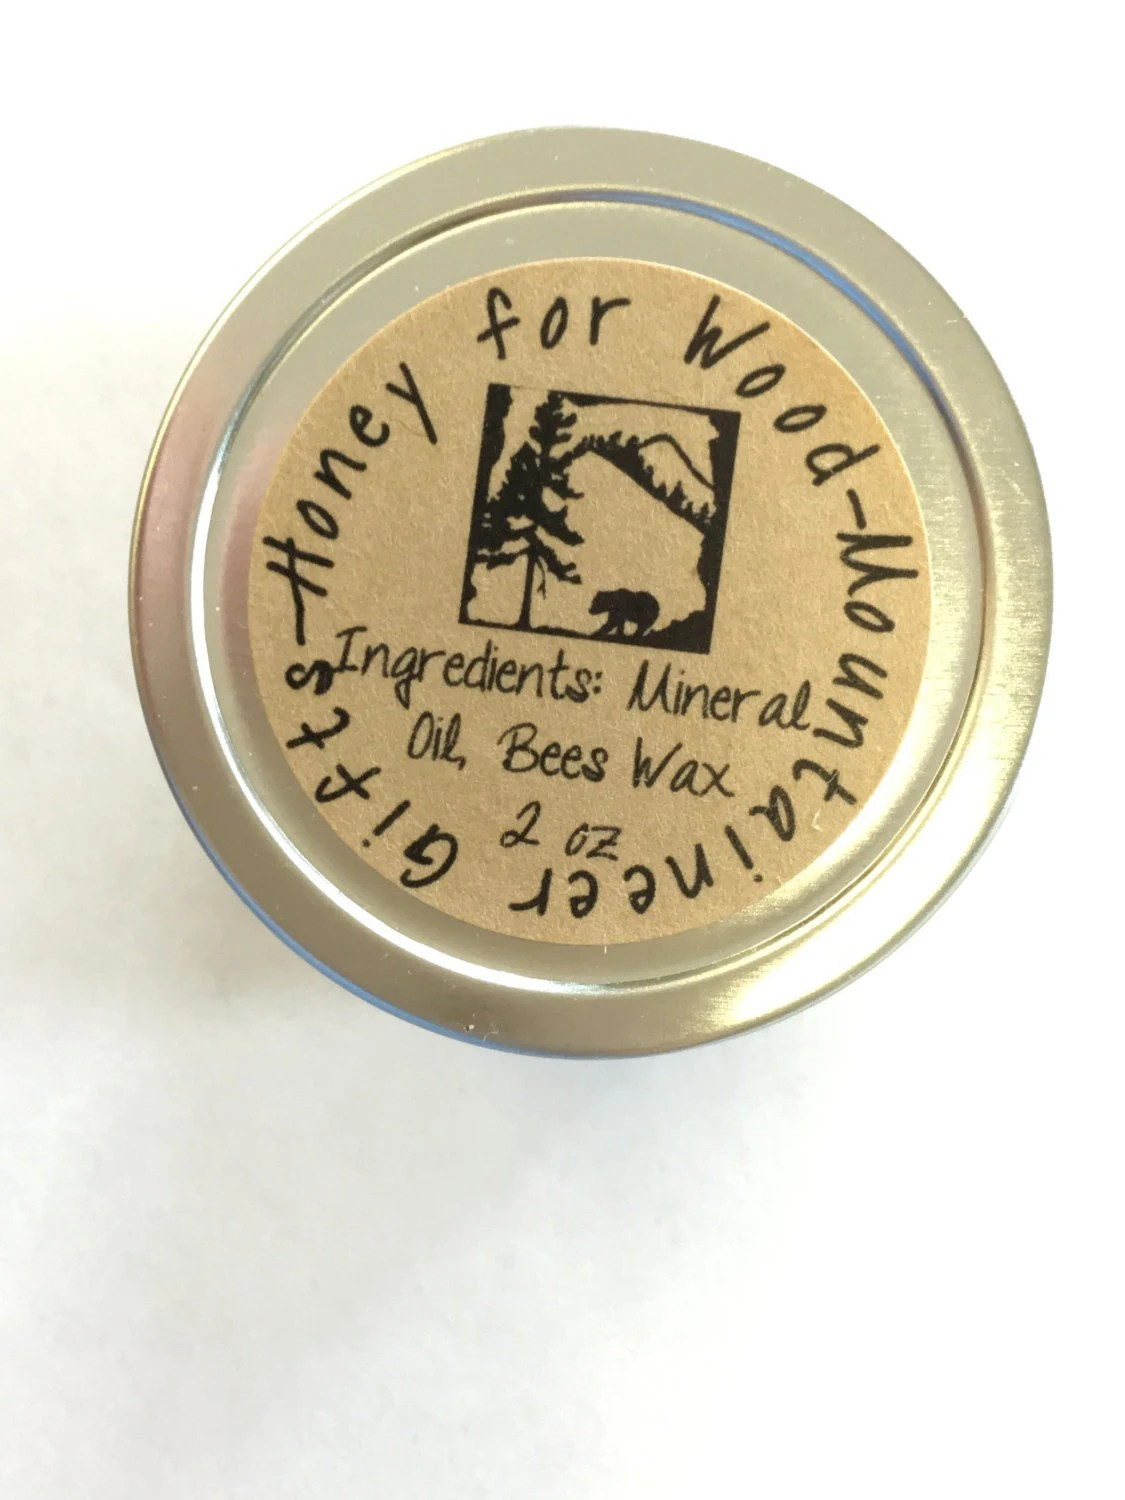 Honey for Wood blend of mineral oil and beeswax 2 ounces used as a finish for treenware or woodenware.